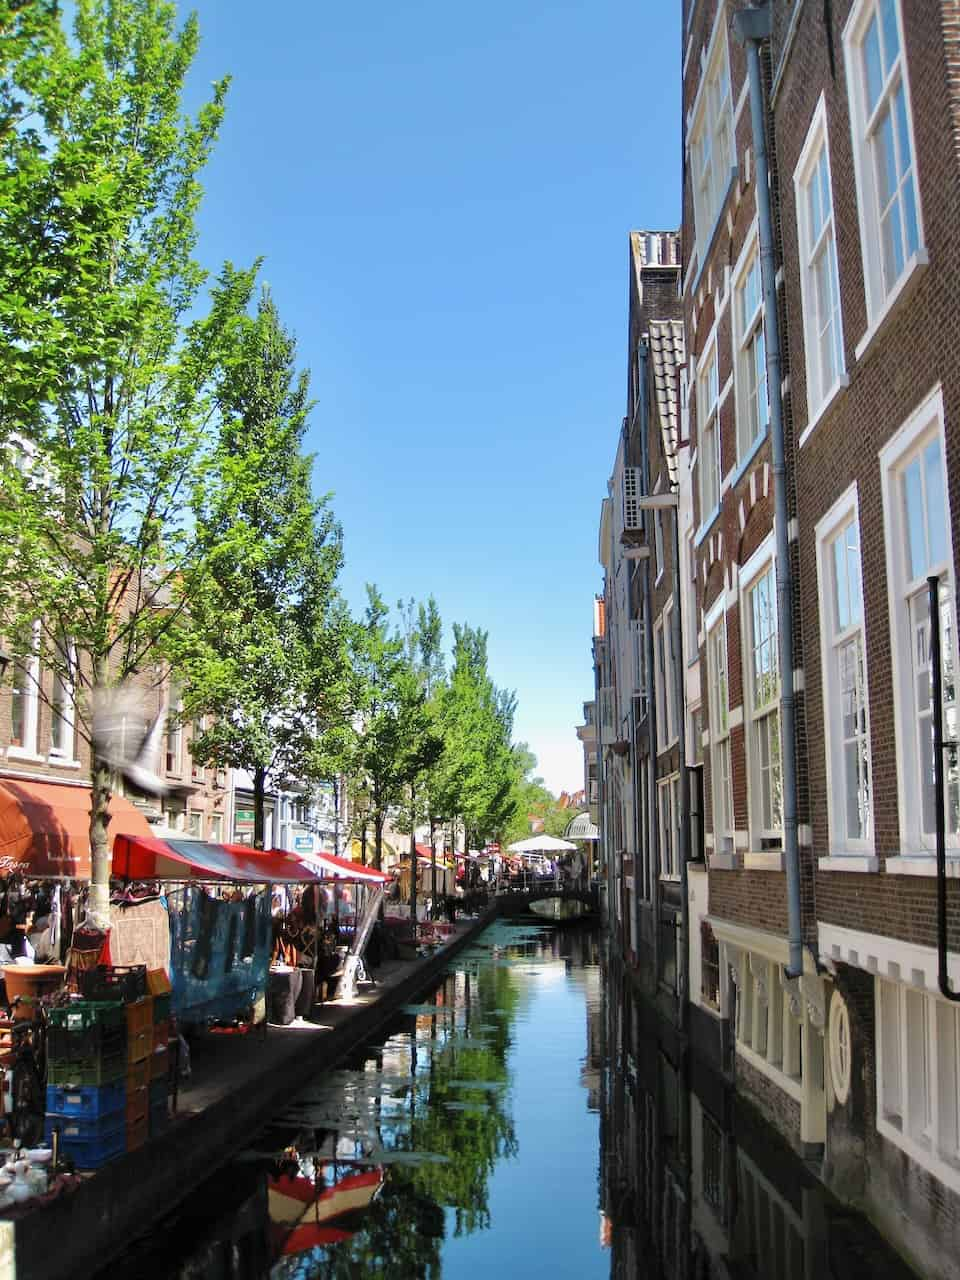 delft-canal-houses-photo